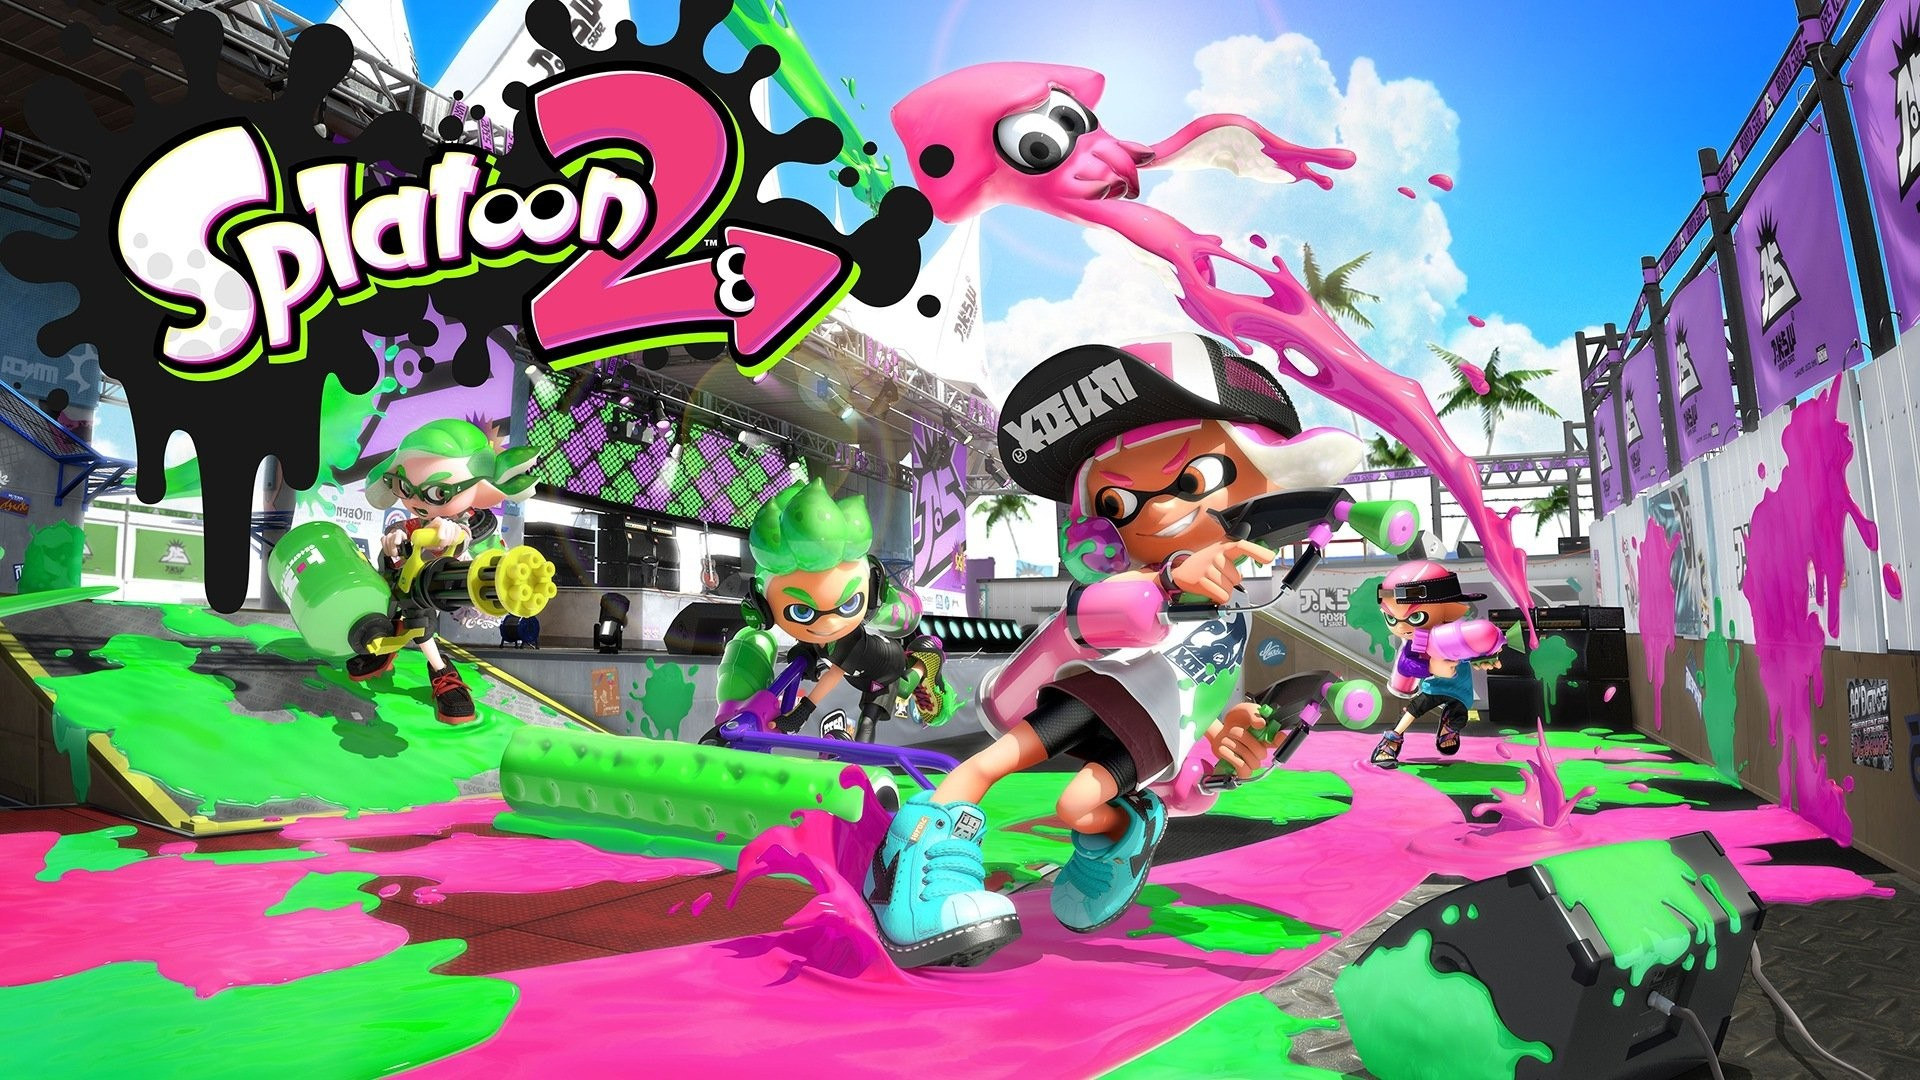 Nintendo Wallpaper Iphone X Splatoon Background 183 ① Download Free Awesome Full Hd